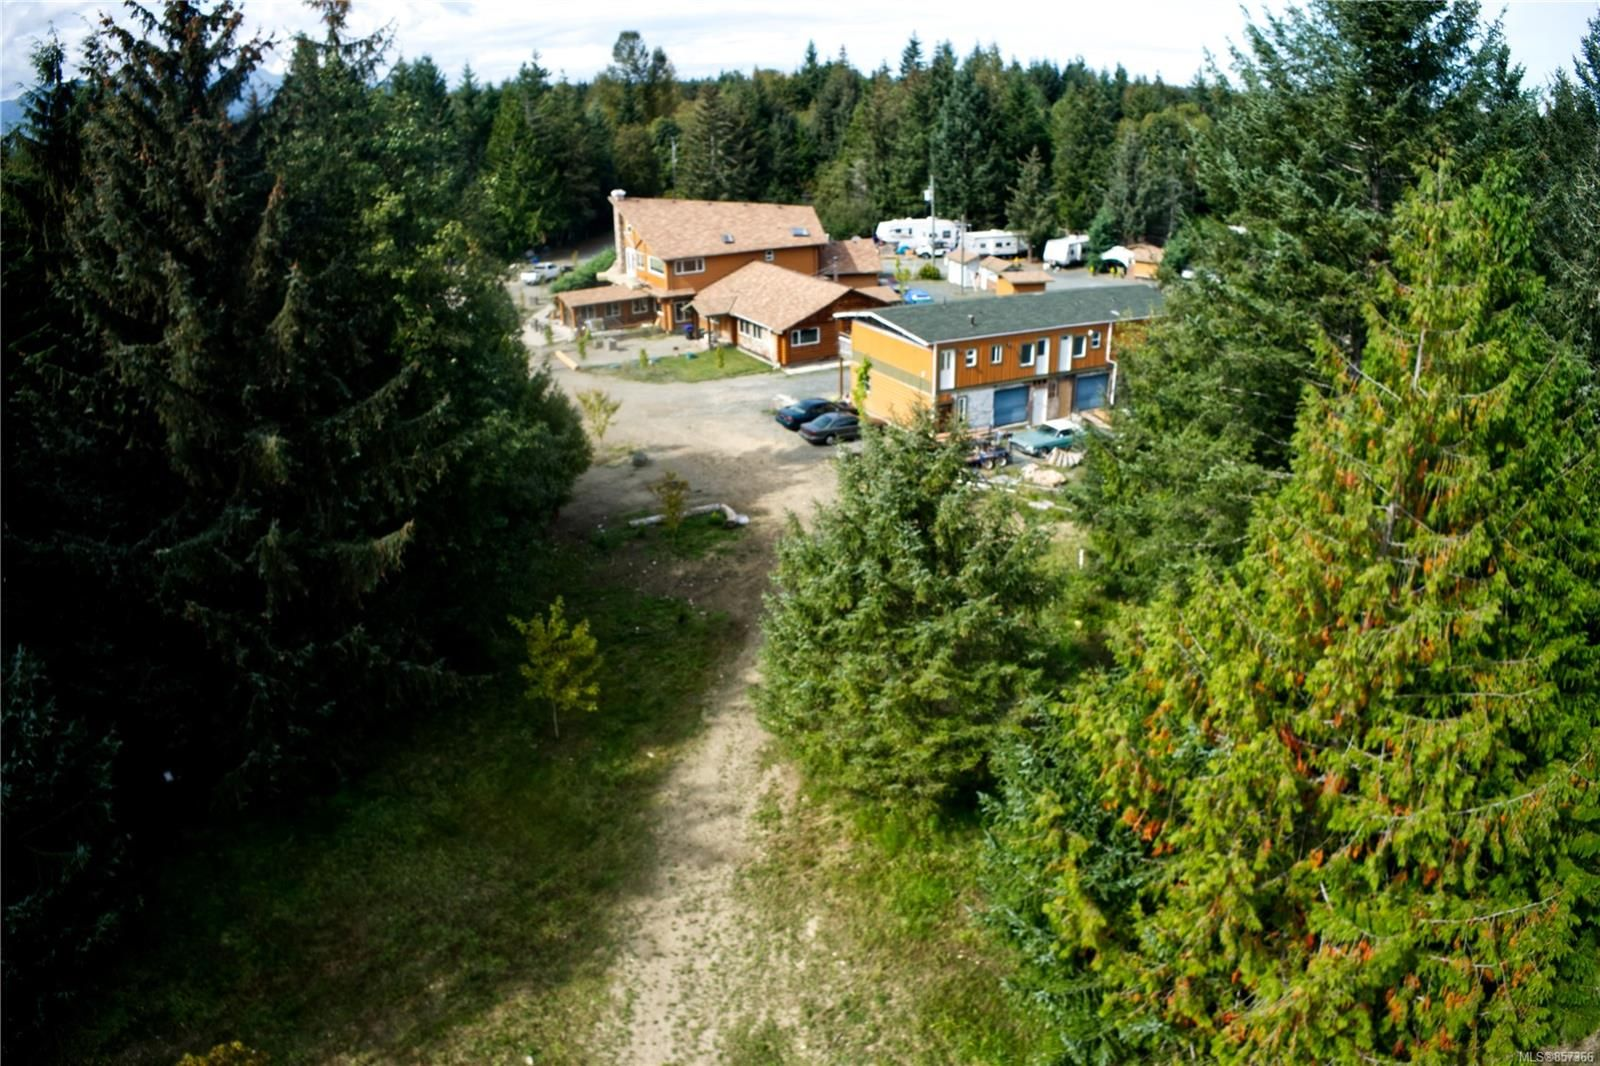 Photo 22: Photos: 1747 Nahmint Rd in : PQ Qualicum North Mixed Use for sale (Parksville/Qualicum)  : MLS®# 857366